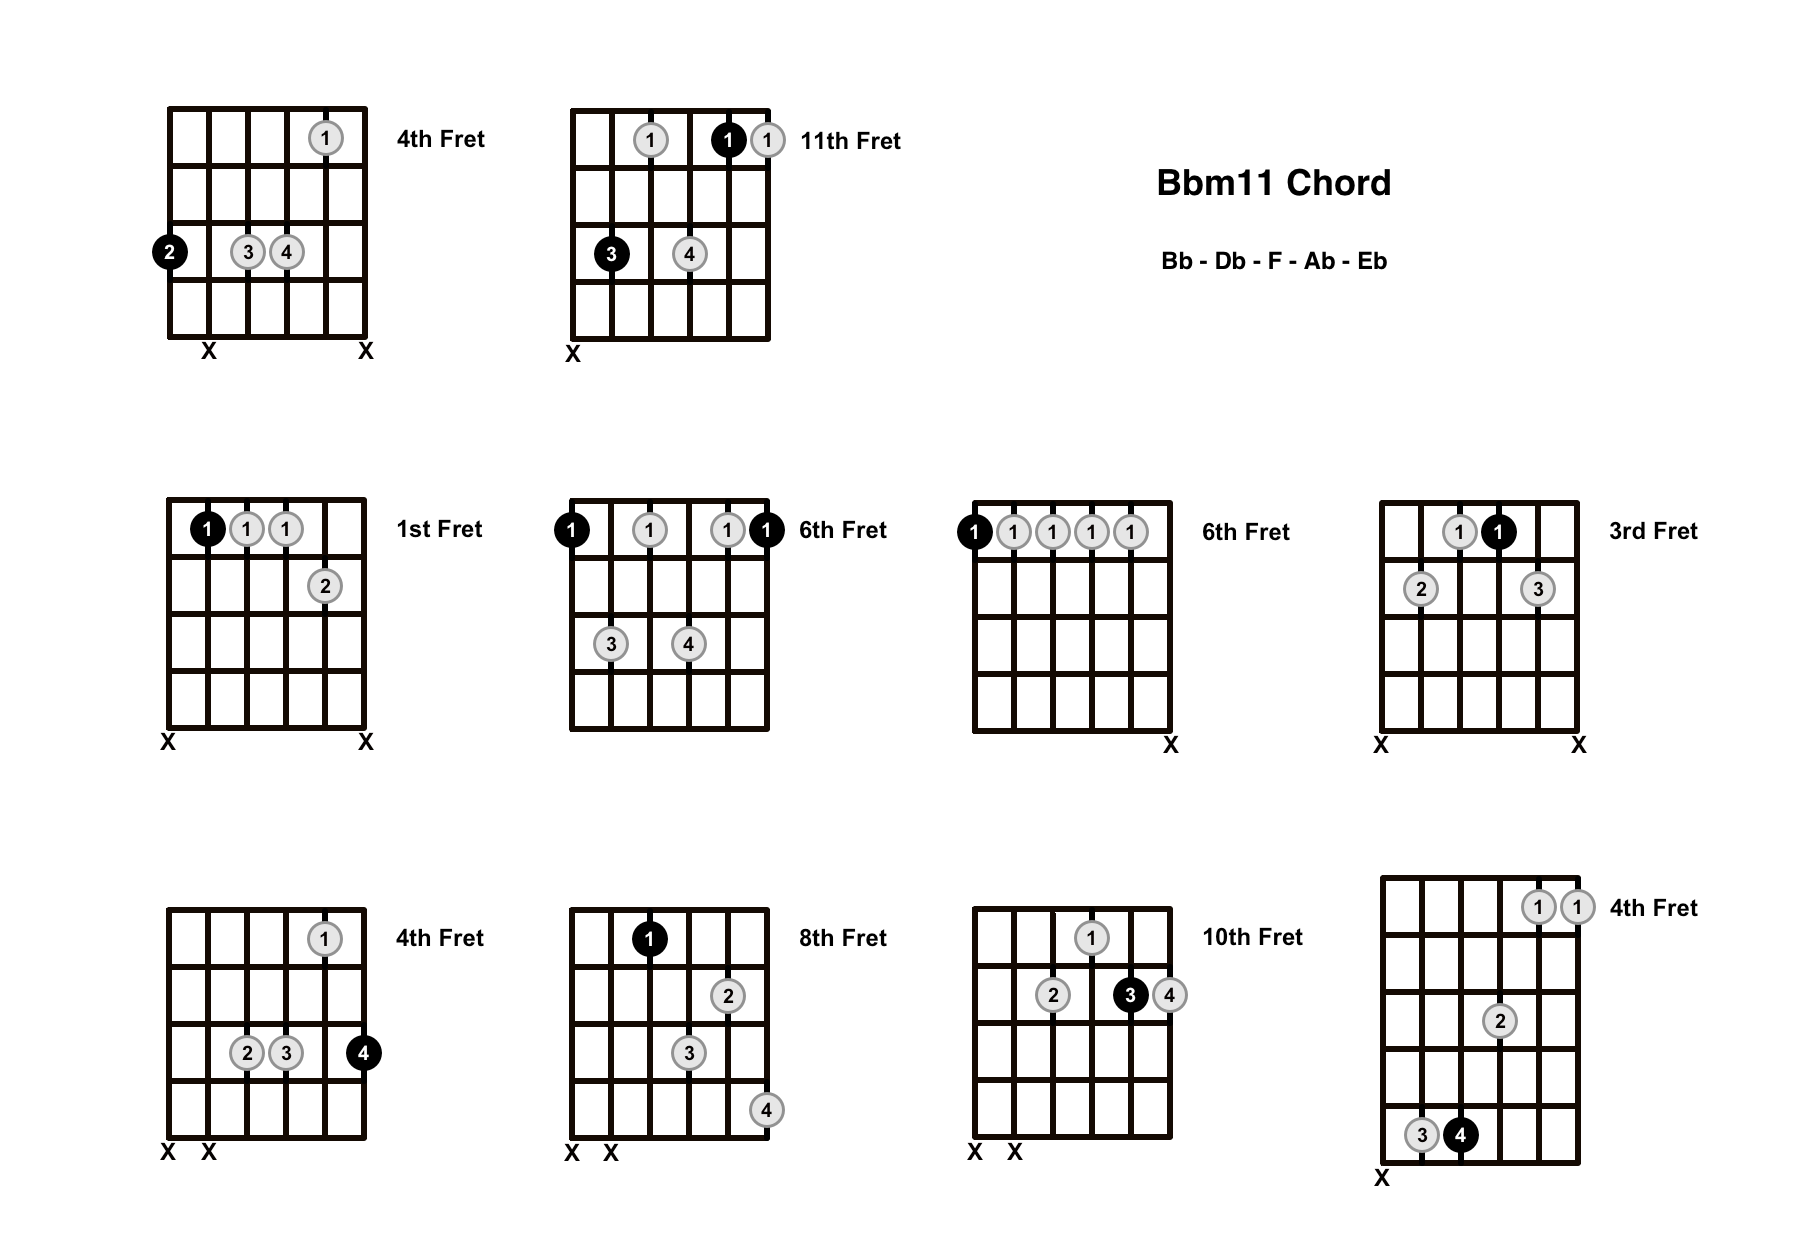 Bbm11 Chord On The Guitar (B Flat minor 11) – Diagrams, Finger Positions and Theory